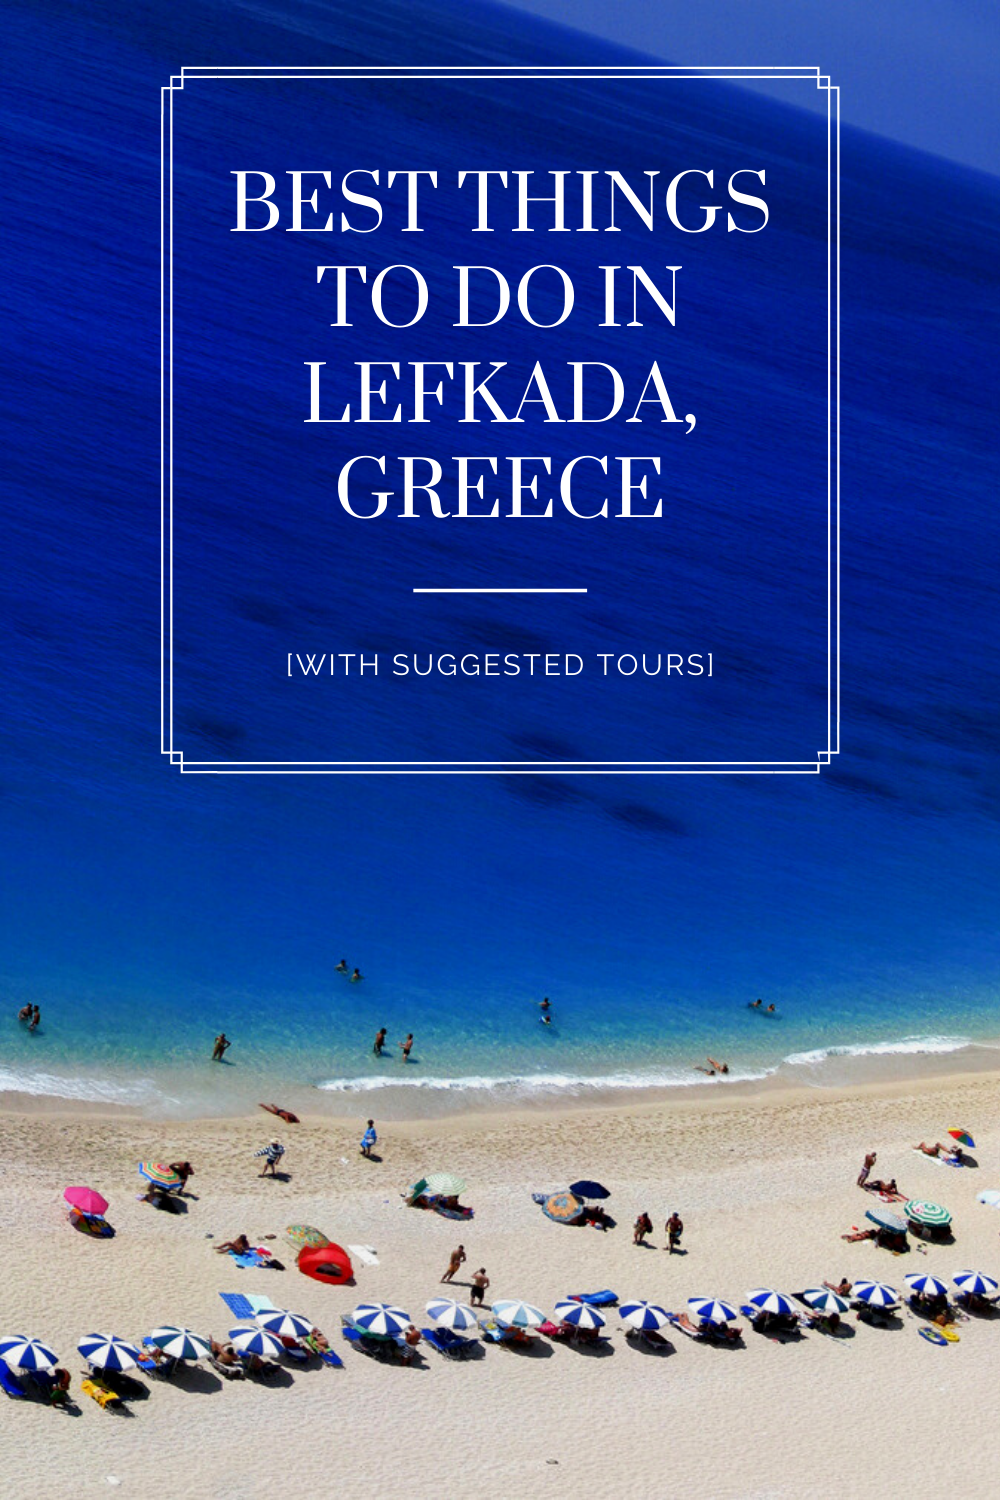 10 Best Things to do in Lefkada, Greece